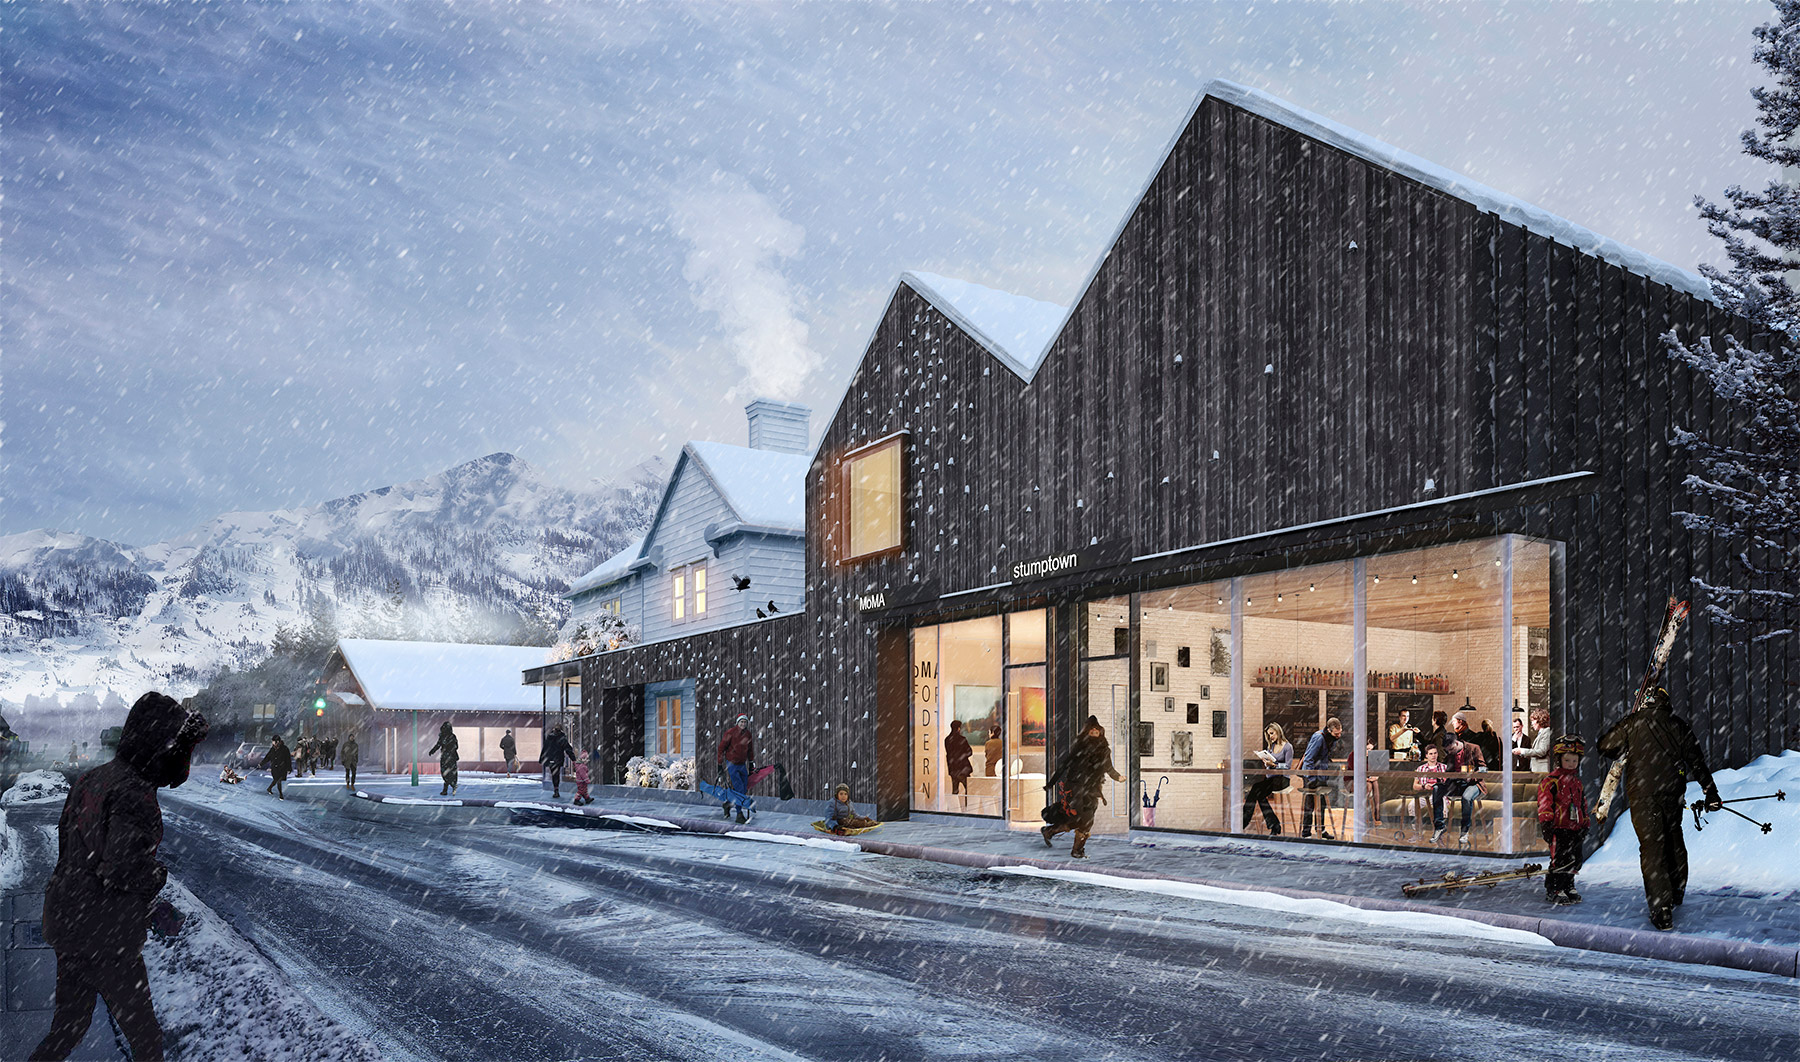 3D, Render, V-Ray, Architectural Visualization, Winter